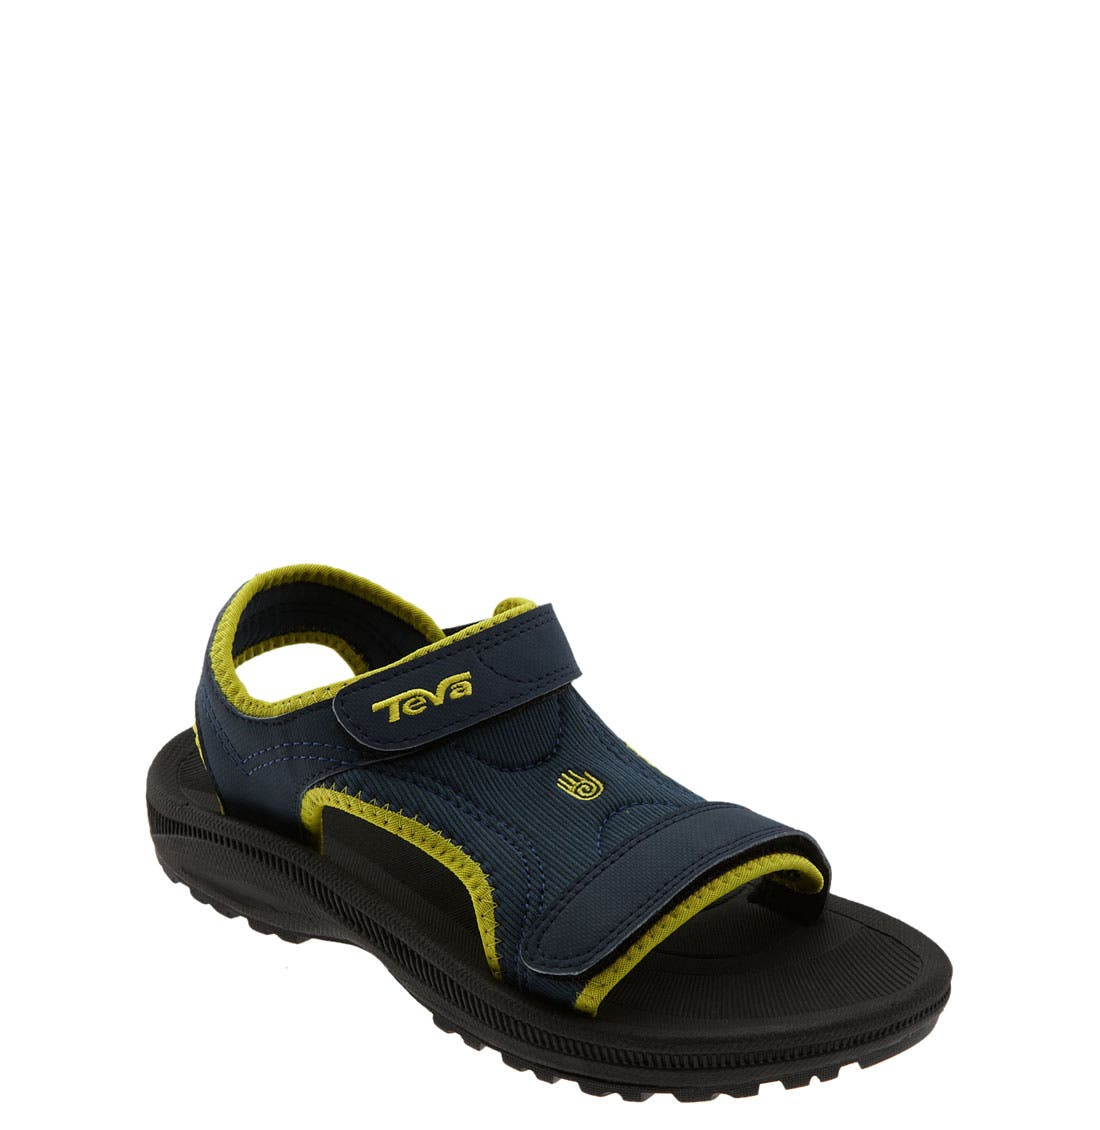 Main Image - Teva 'Psyclone' Water Sandal (Toddler, Little Kid & Big Kid)